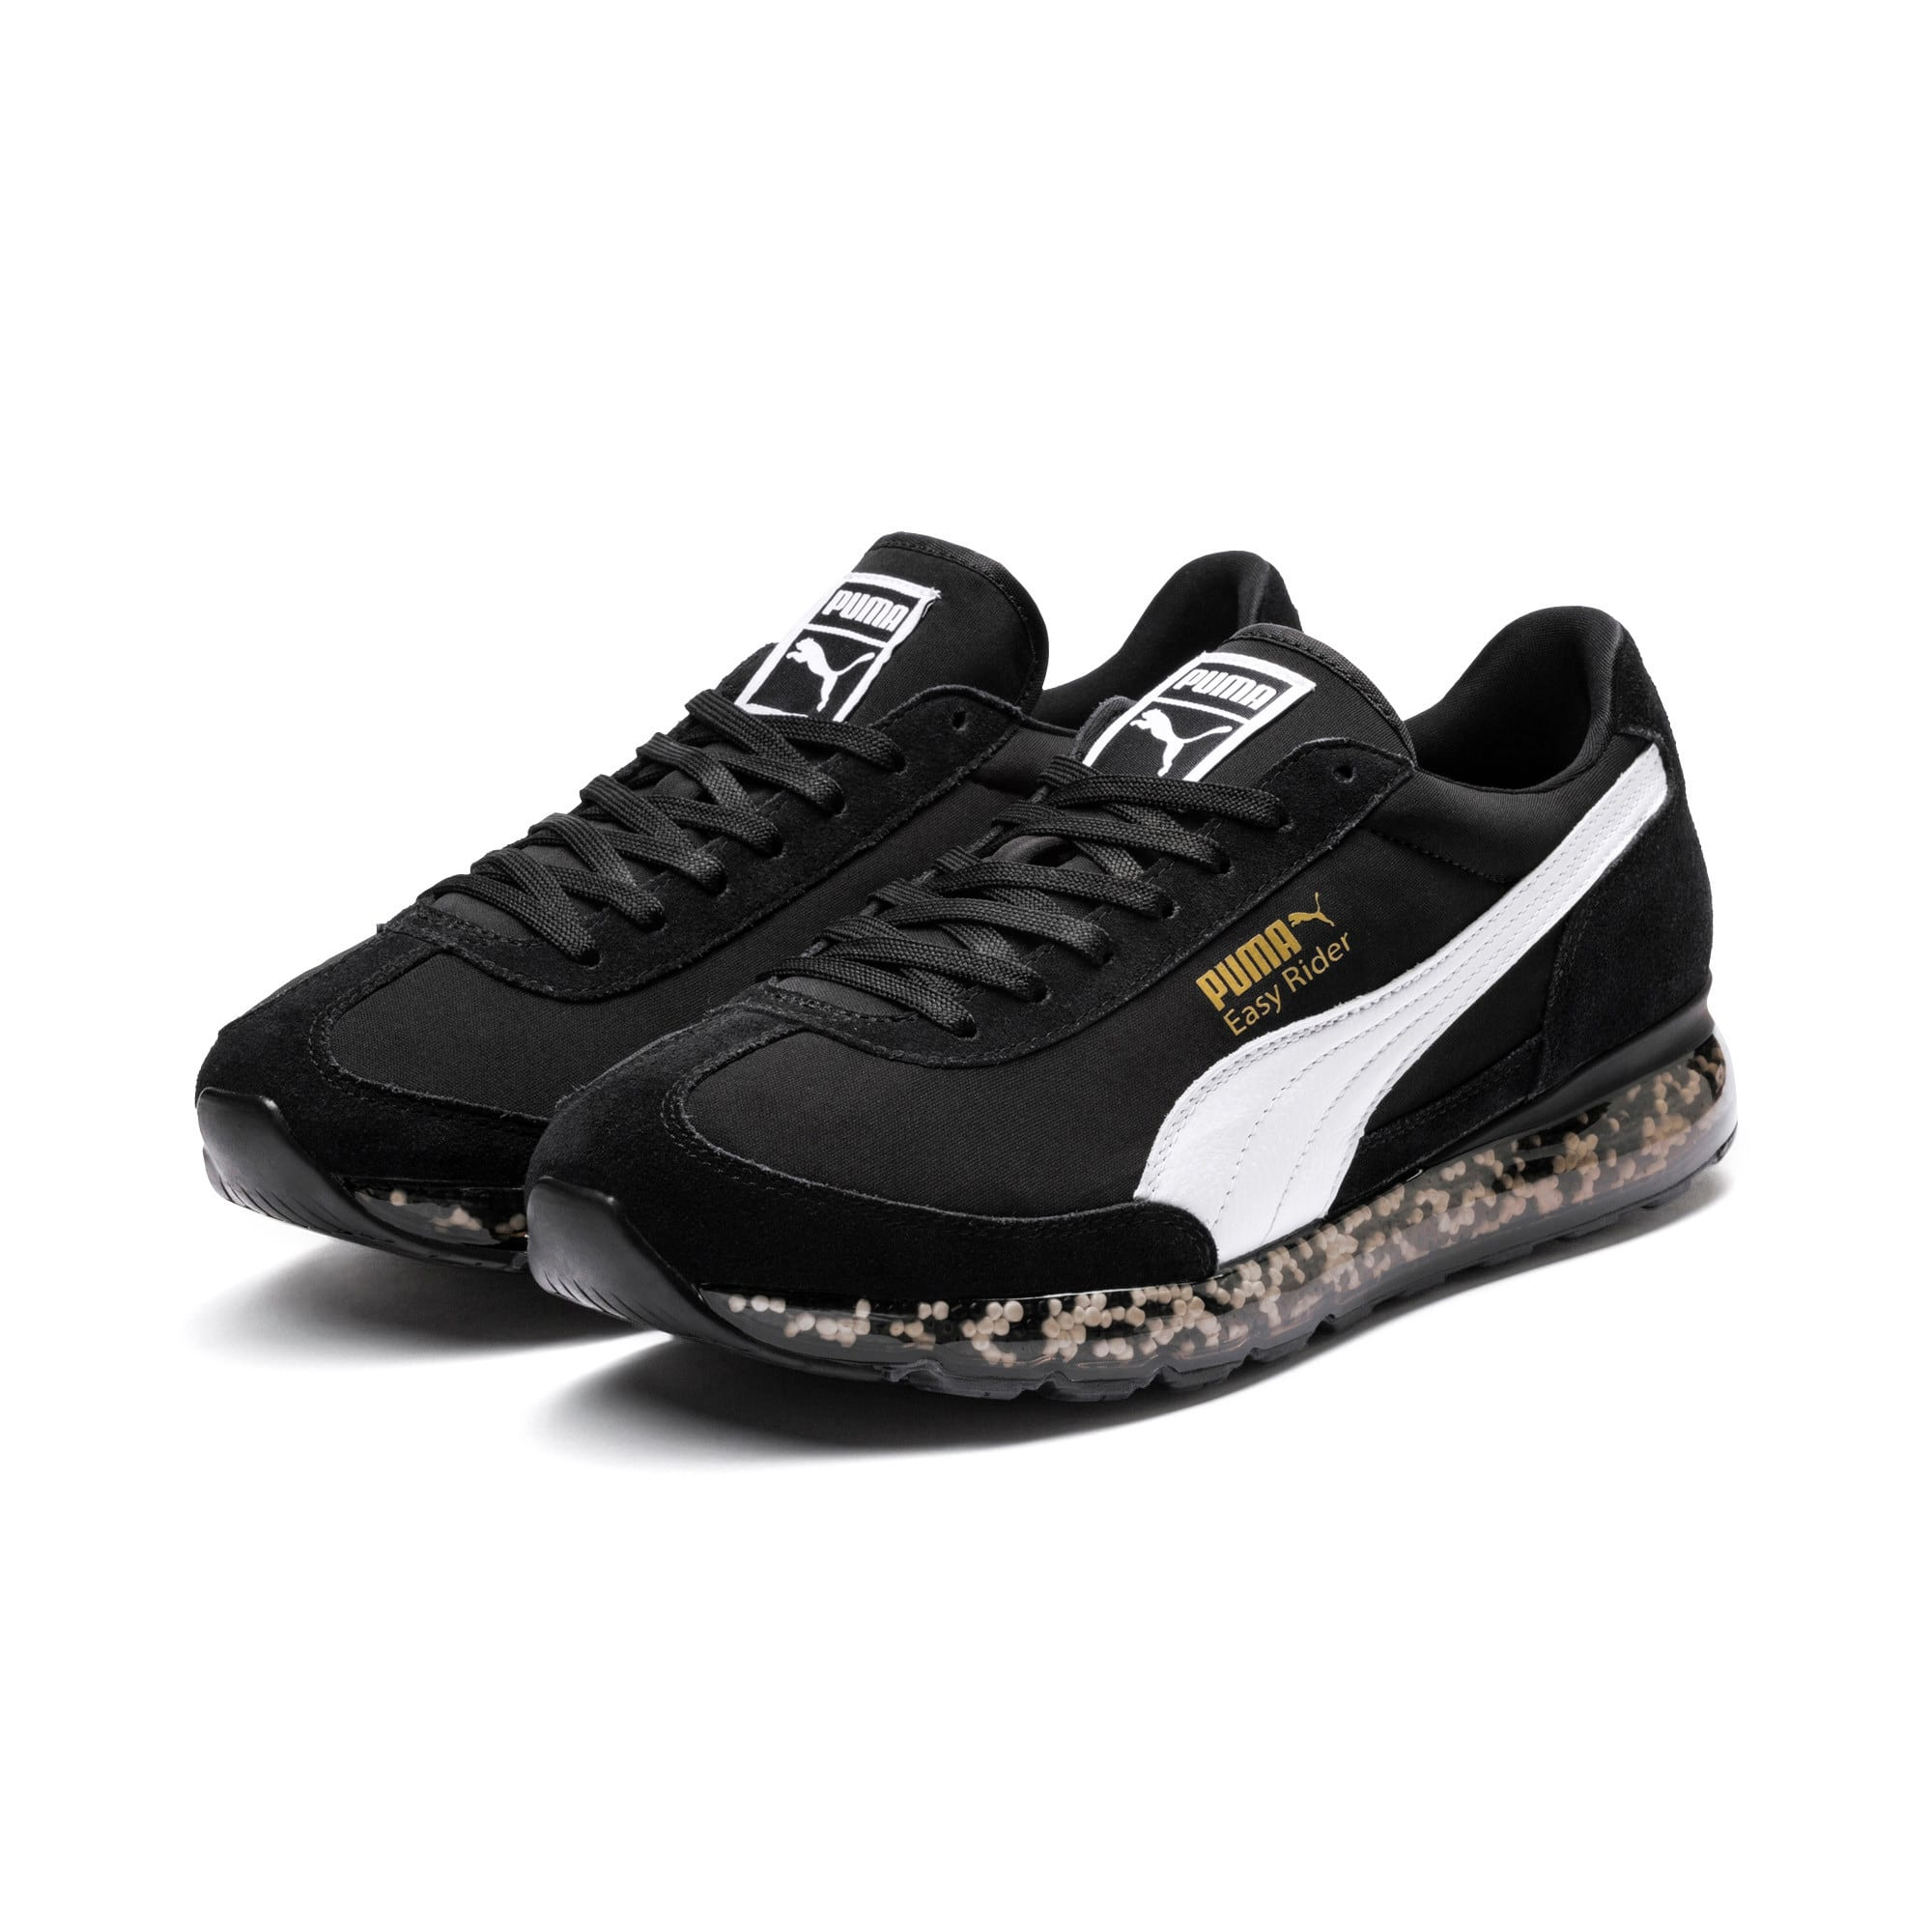 Jamming Easy Rider Running Shoes, Puma Black-Puma White, large